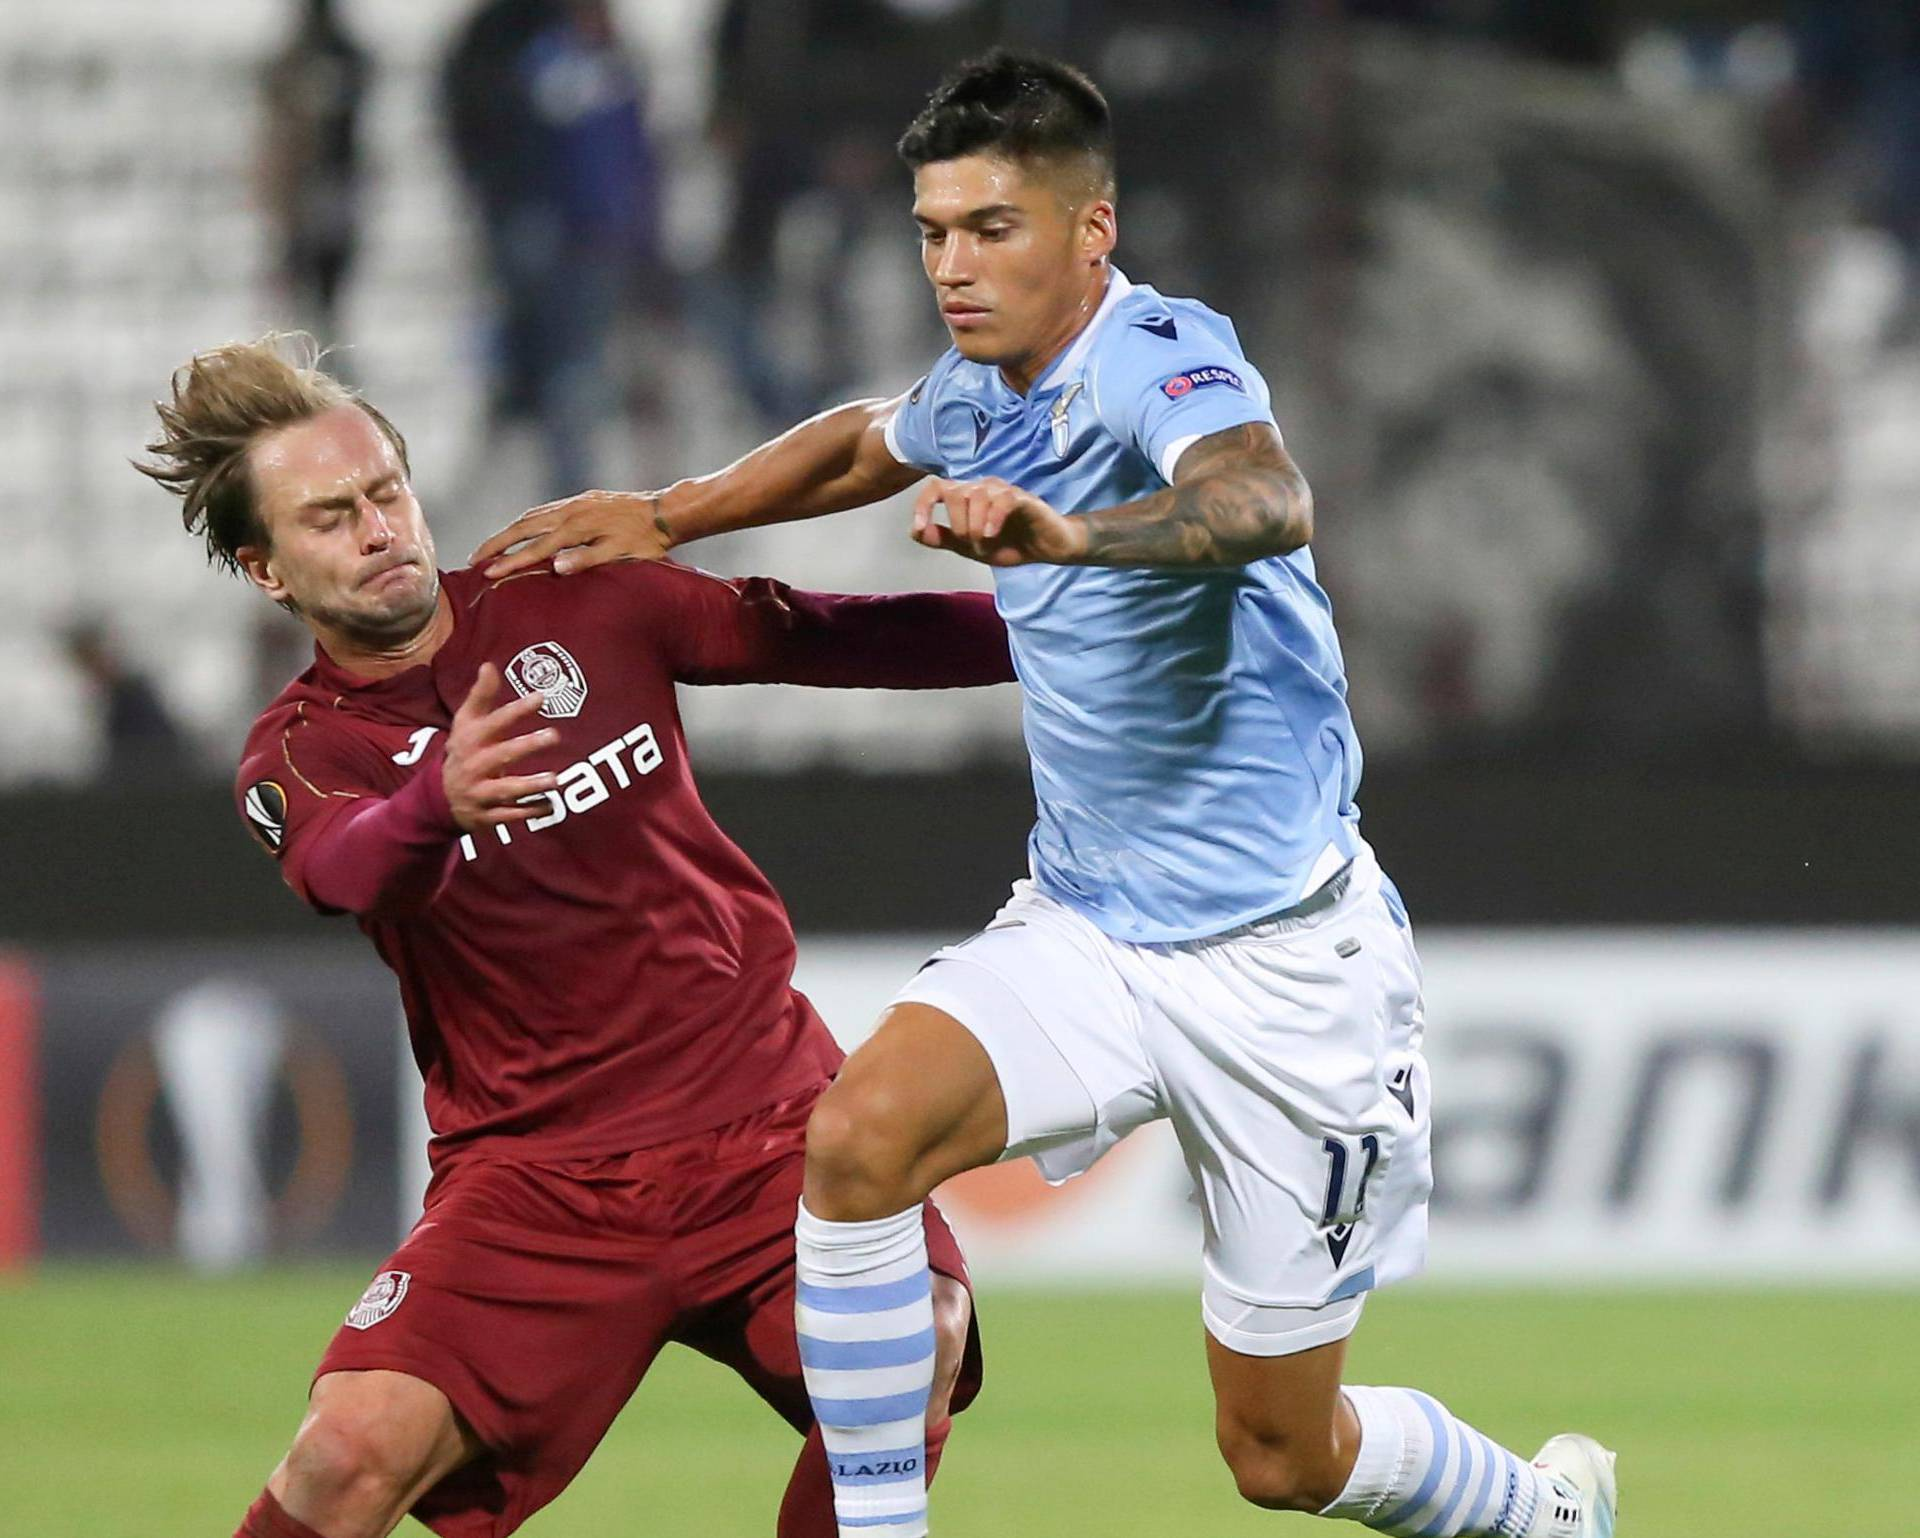 Europa League - Group E - CFR Cluj v Lazio